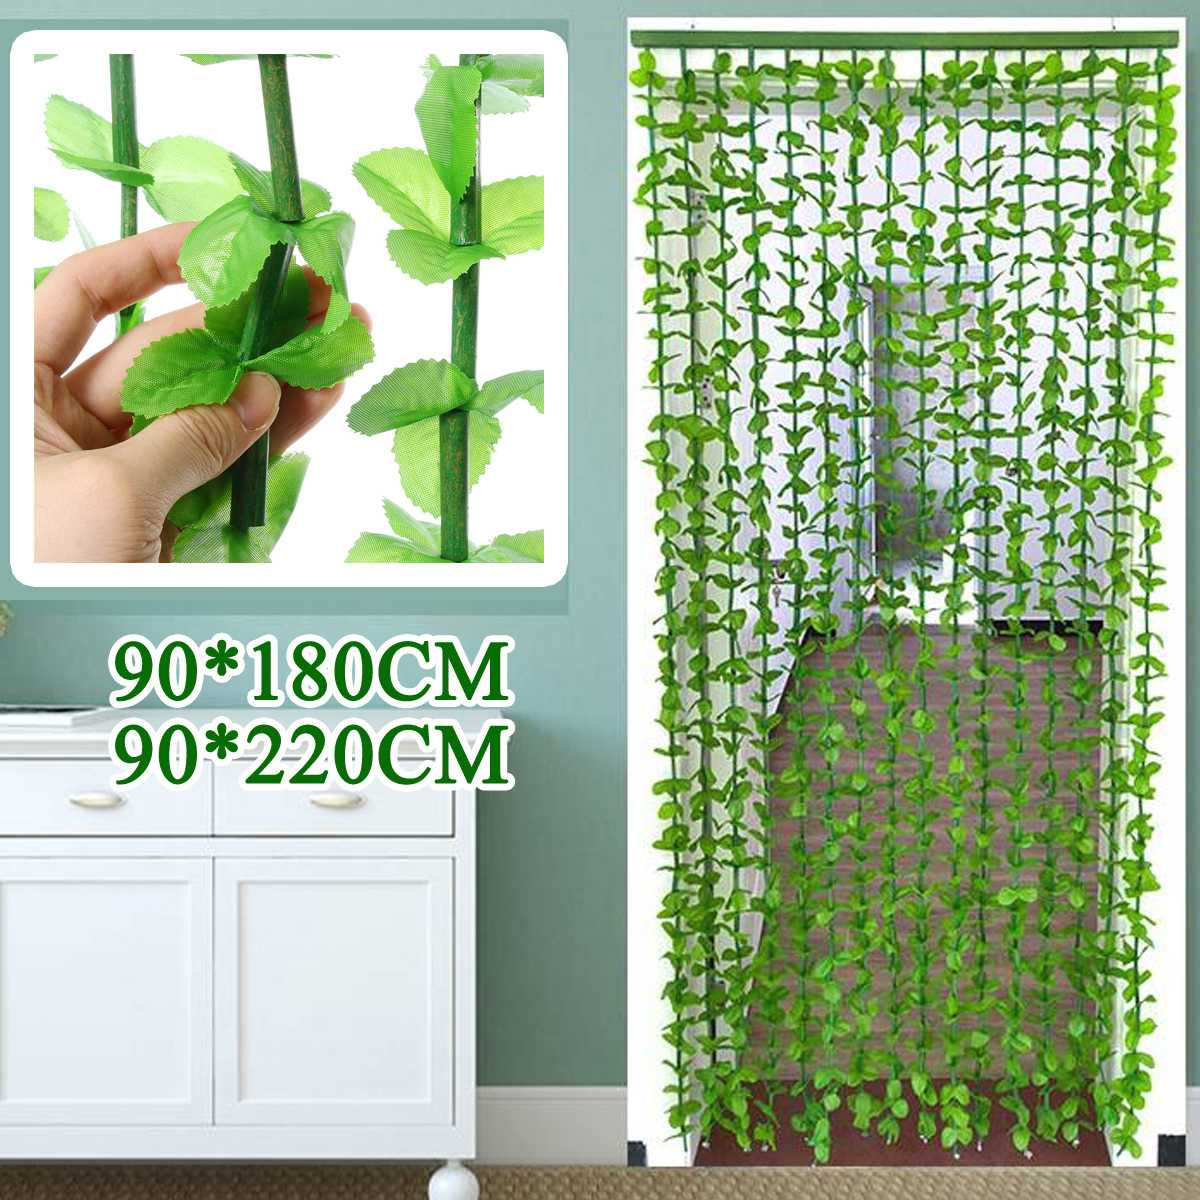 16 Lines Fly Screen Green Leaf Bamboo Leaves String Curtain 90*180CM/90*220CM For Indoor Home Backdrop Shop Restaurant Decor